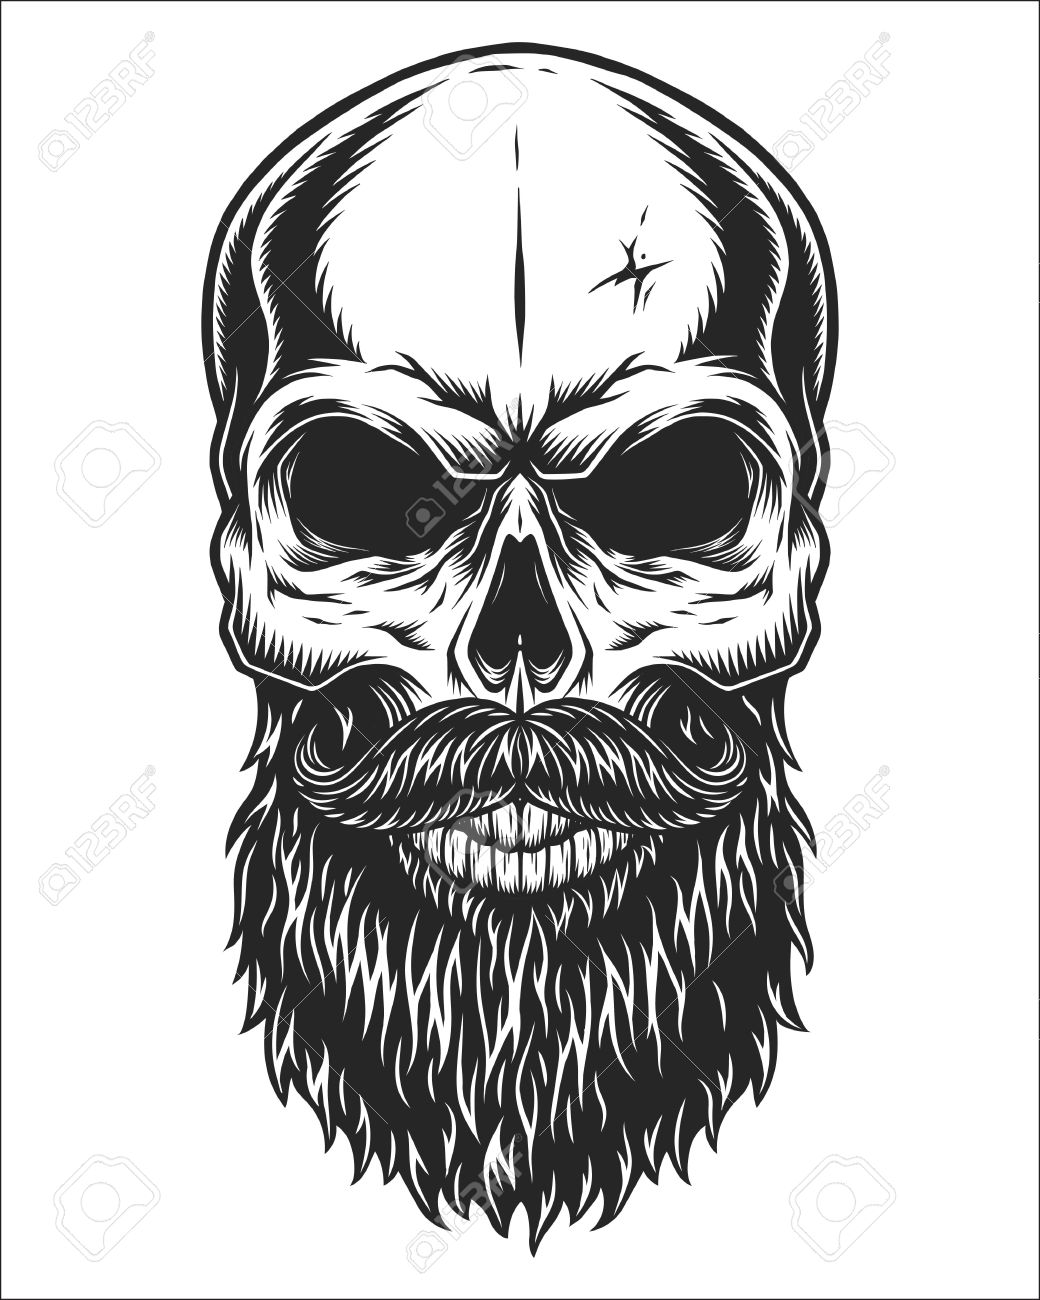 Monochrome illustration of hipster skull with mustache and beard.